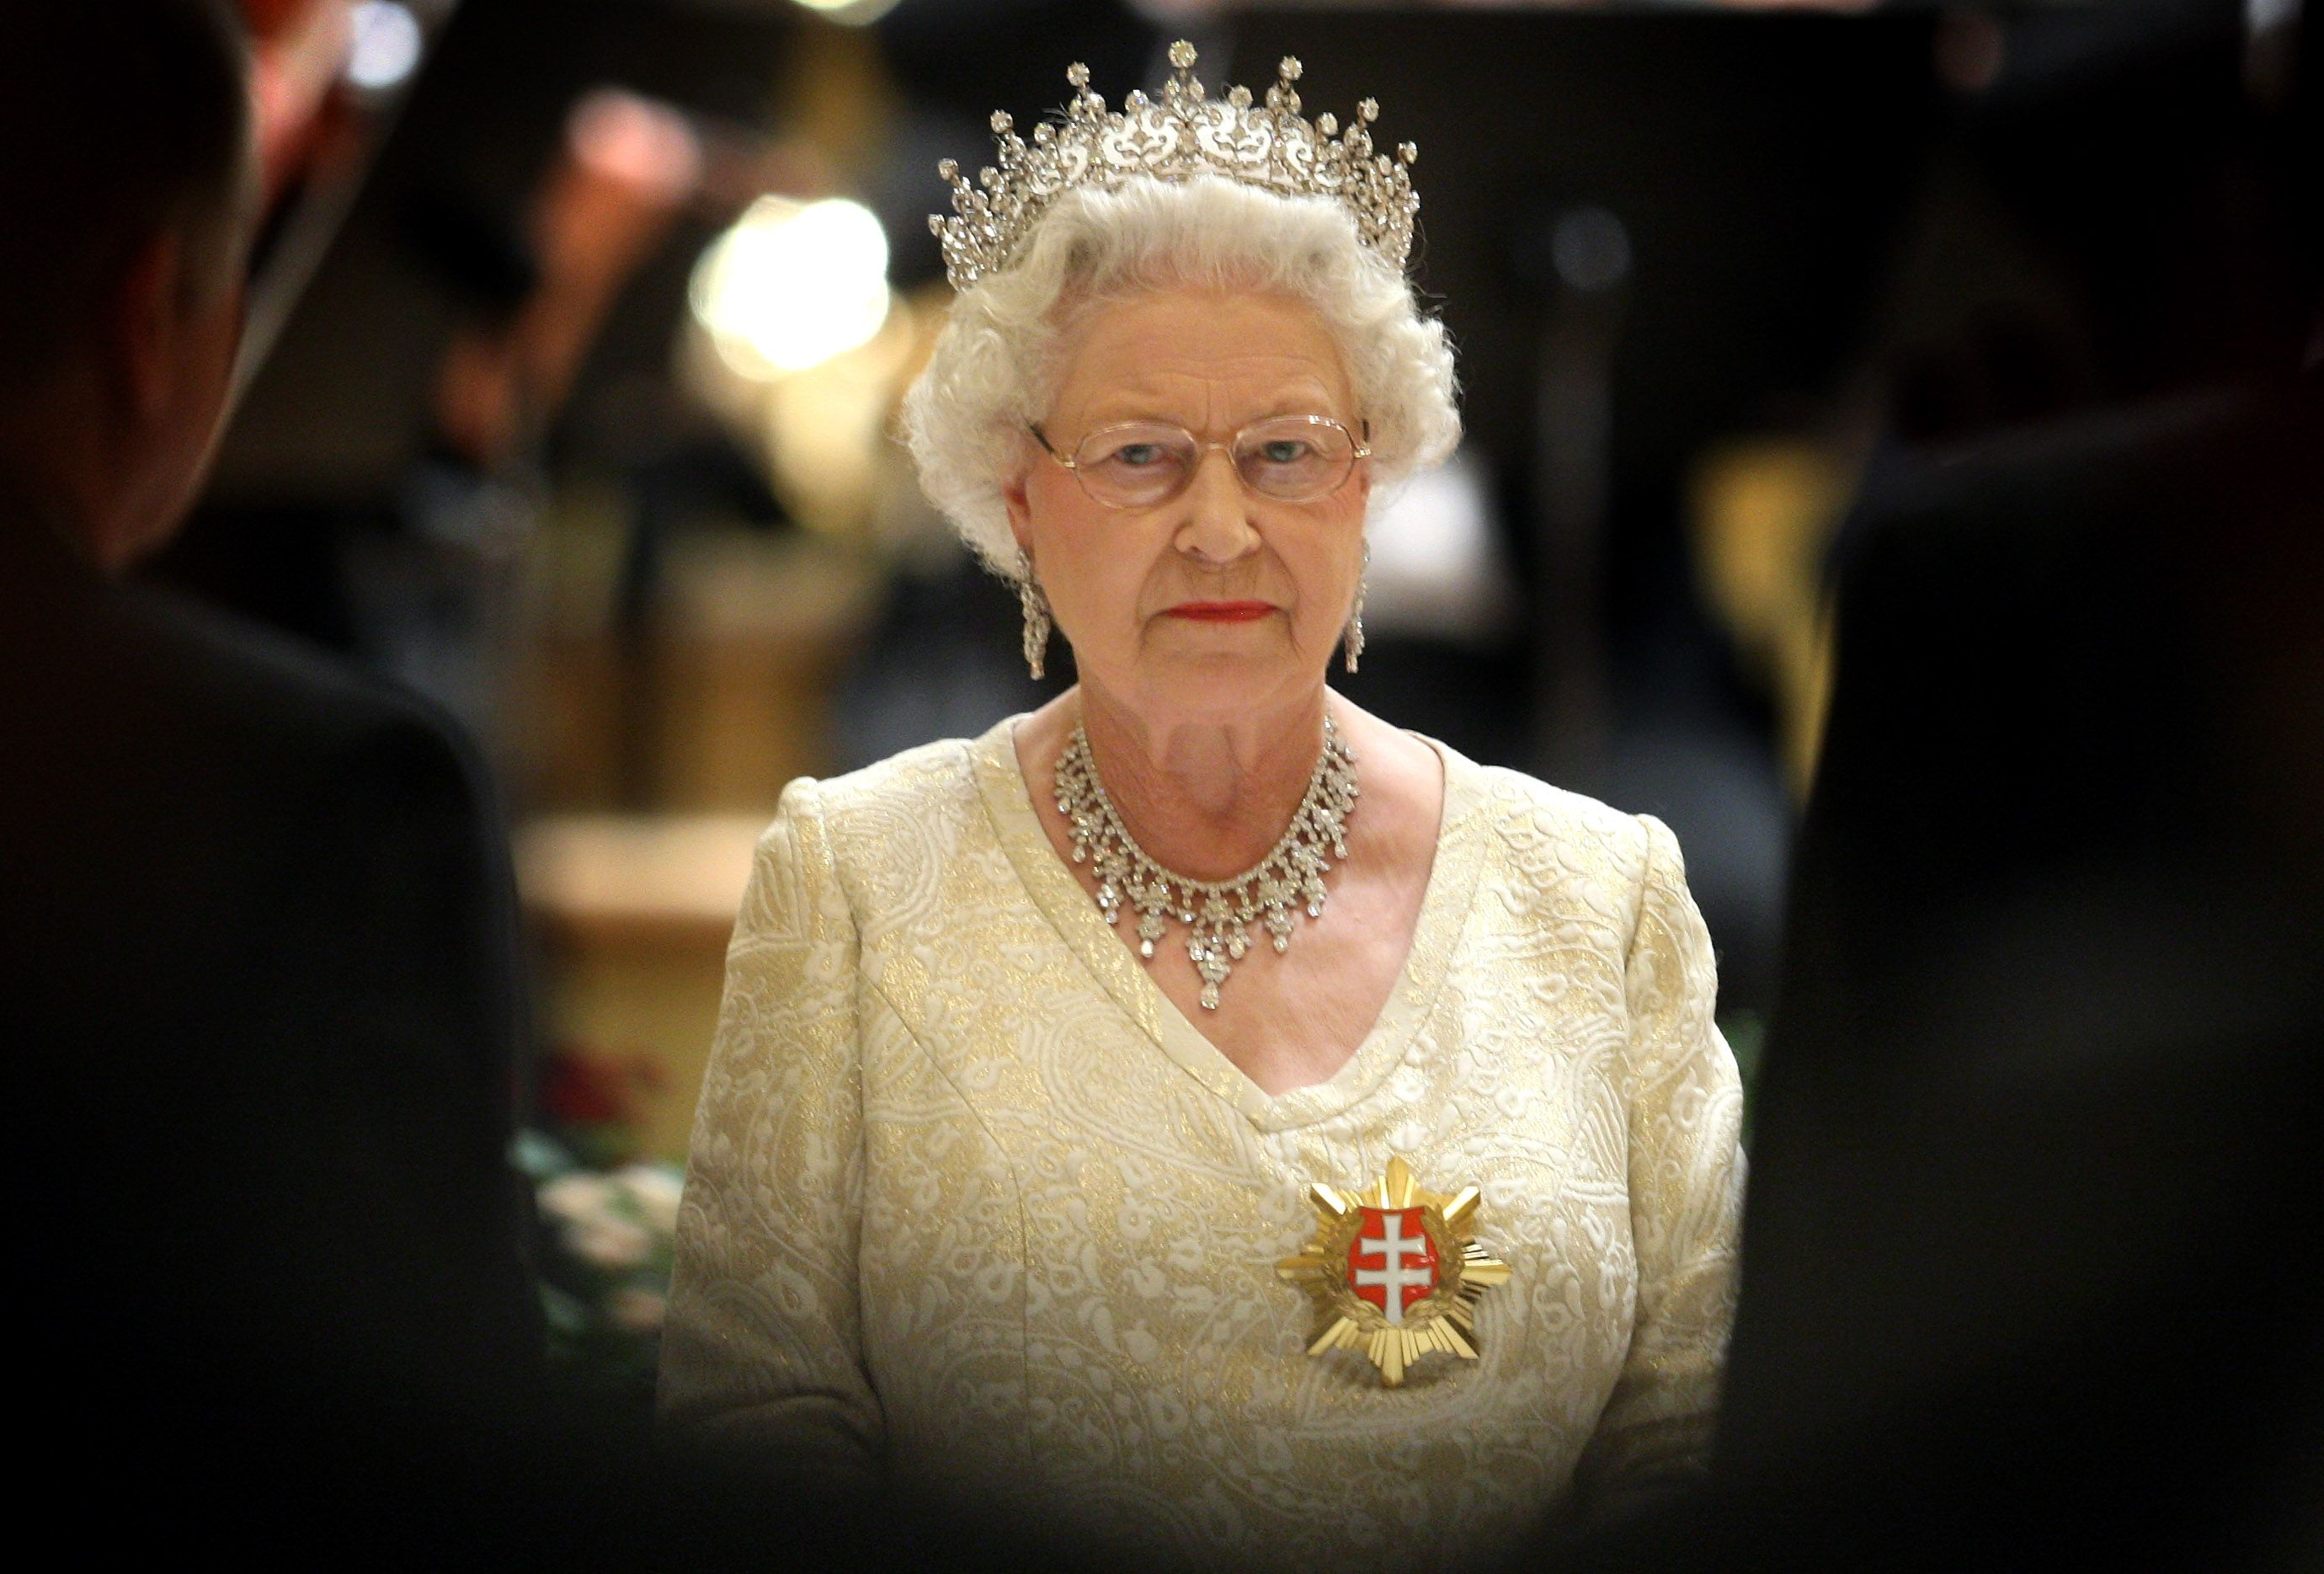 Queen Elizabeth II attends a State Banquet at the Philharmonic Hall on the first day of a tour of Slovakia on October 23, 2008 | Photo: Getty Images